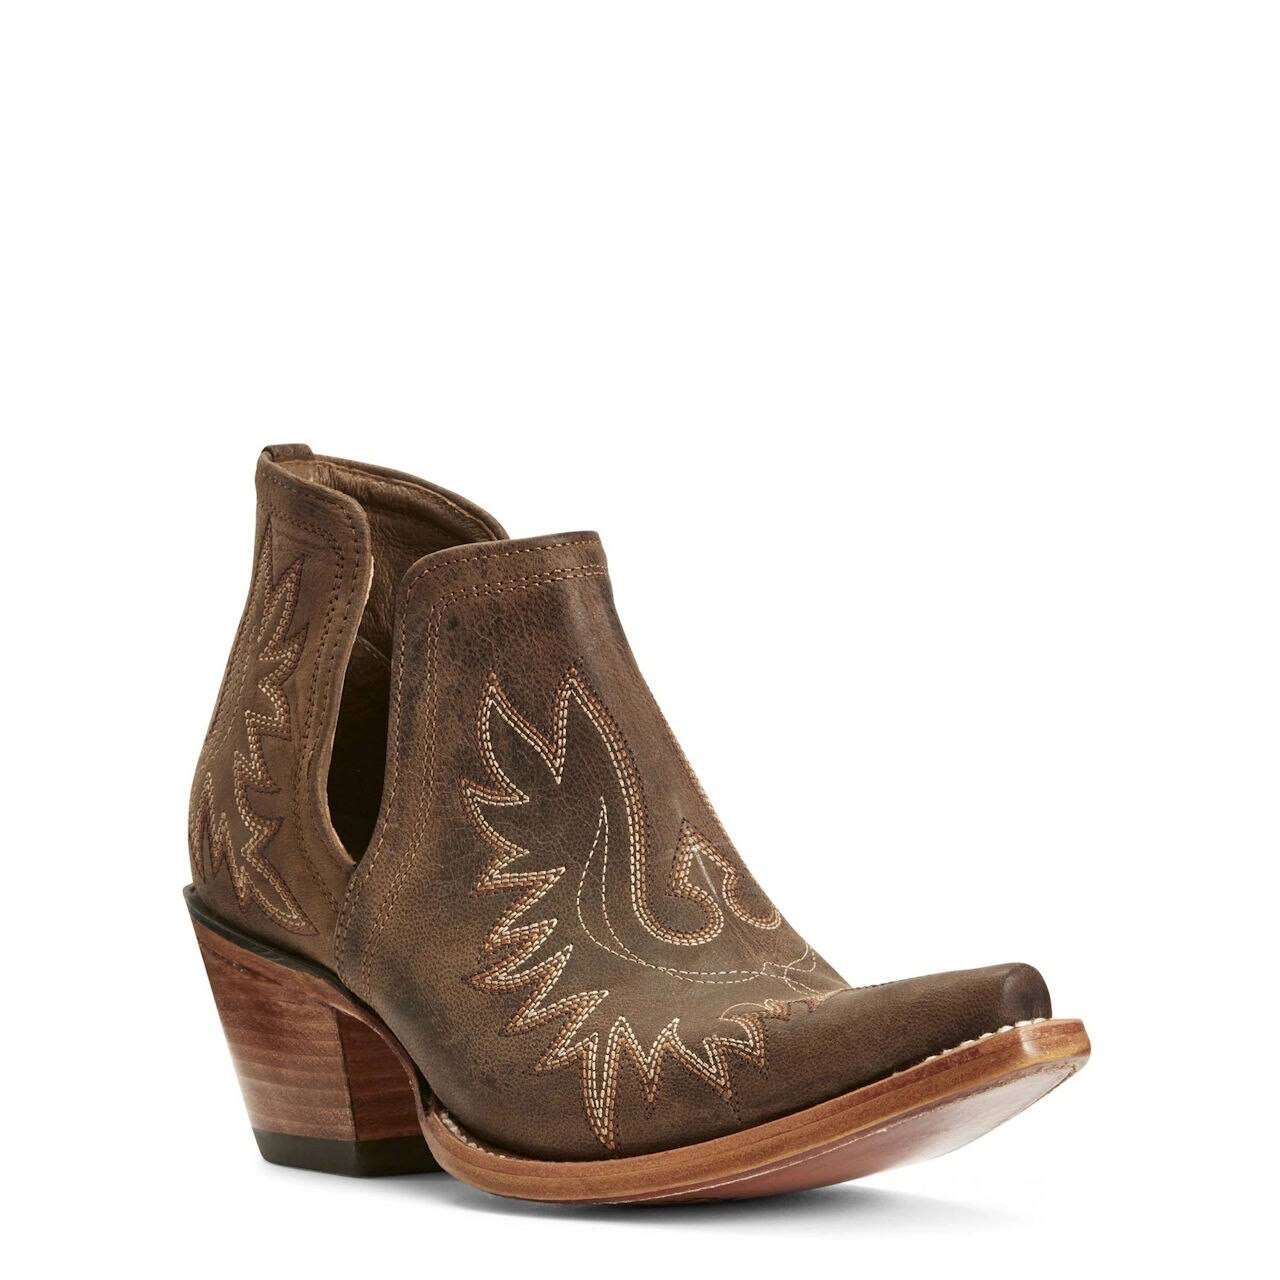 Ariat Women's Dixon Western Boots, Brown